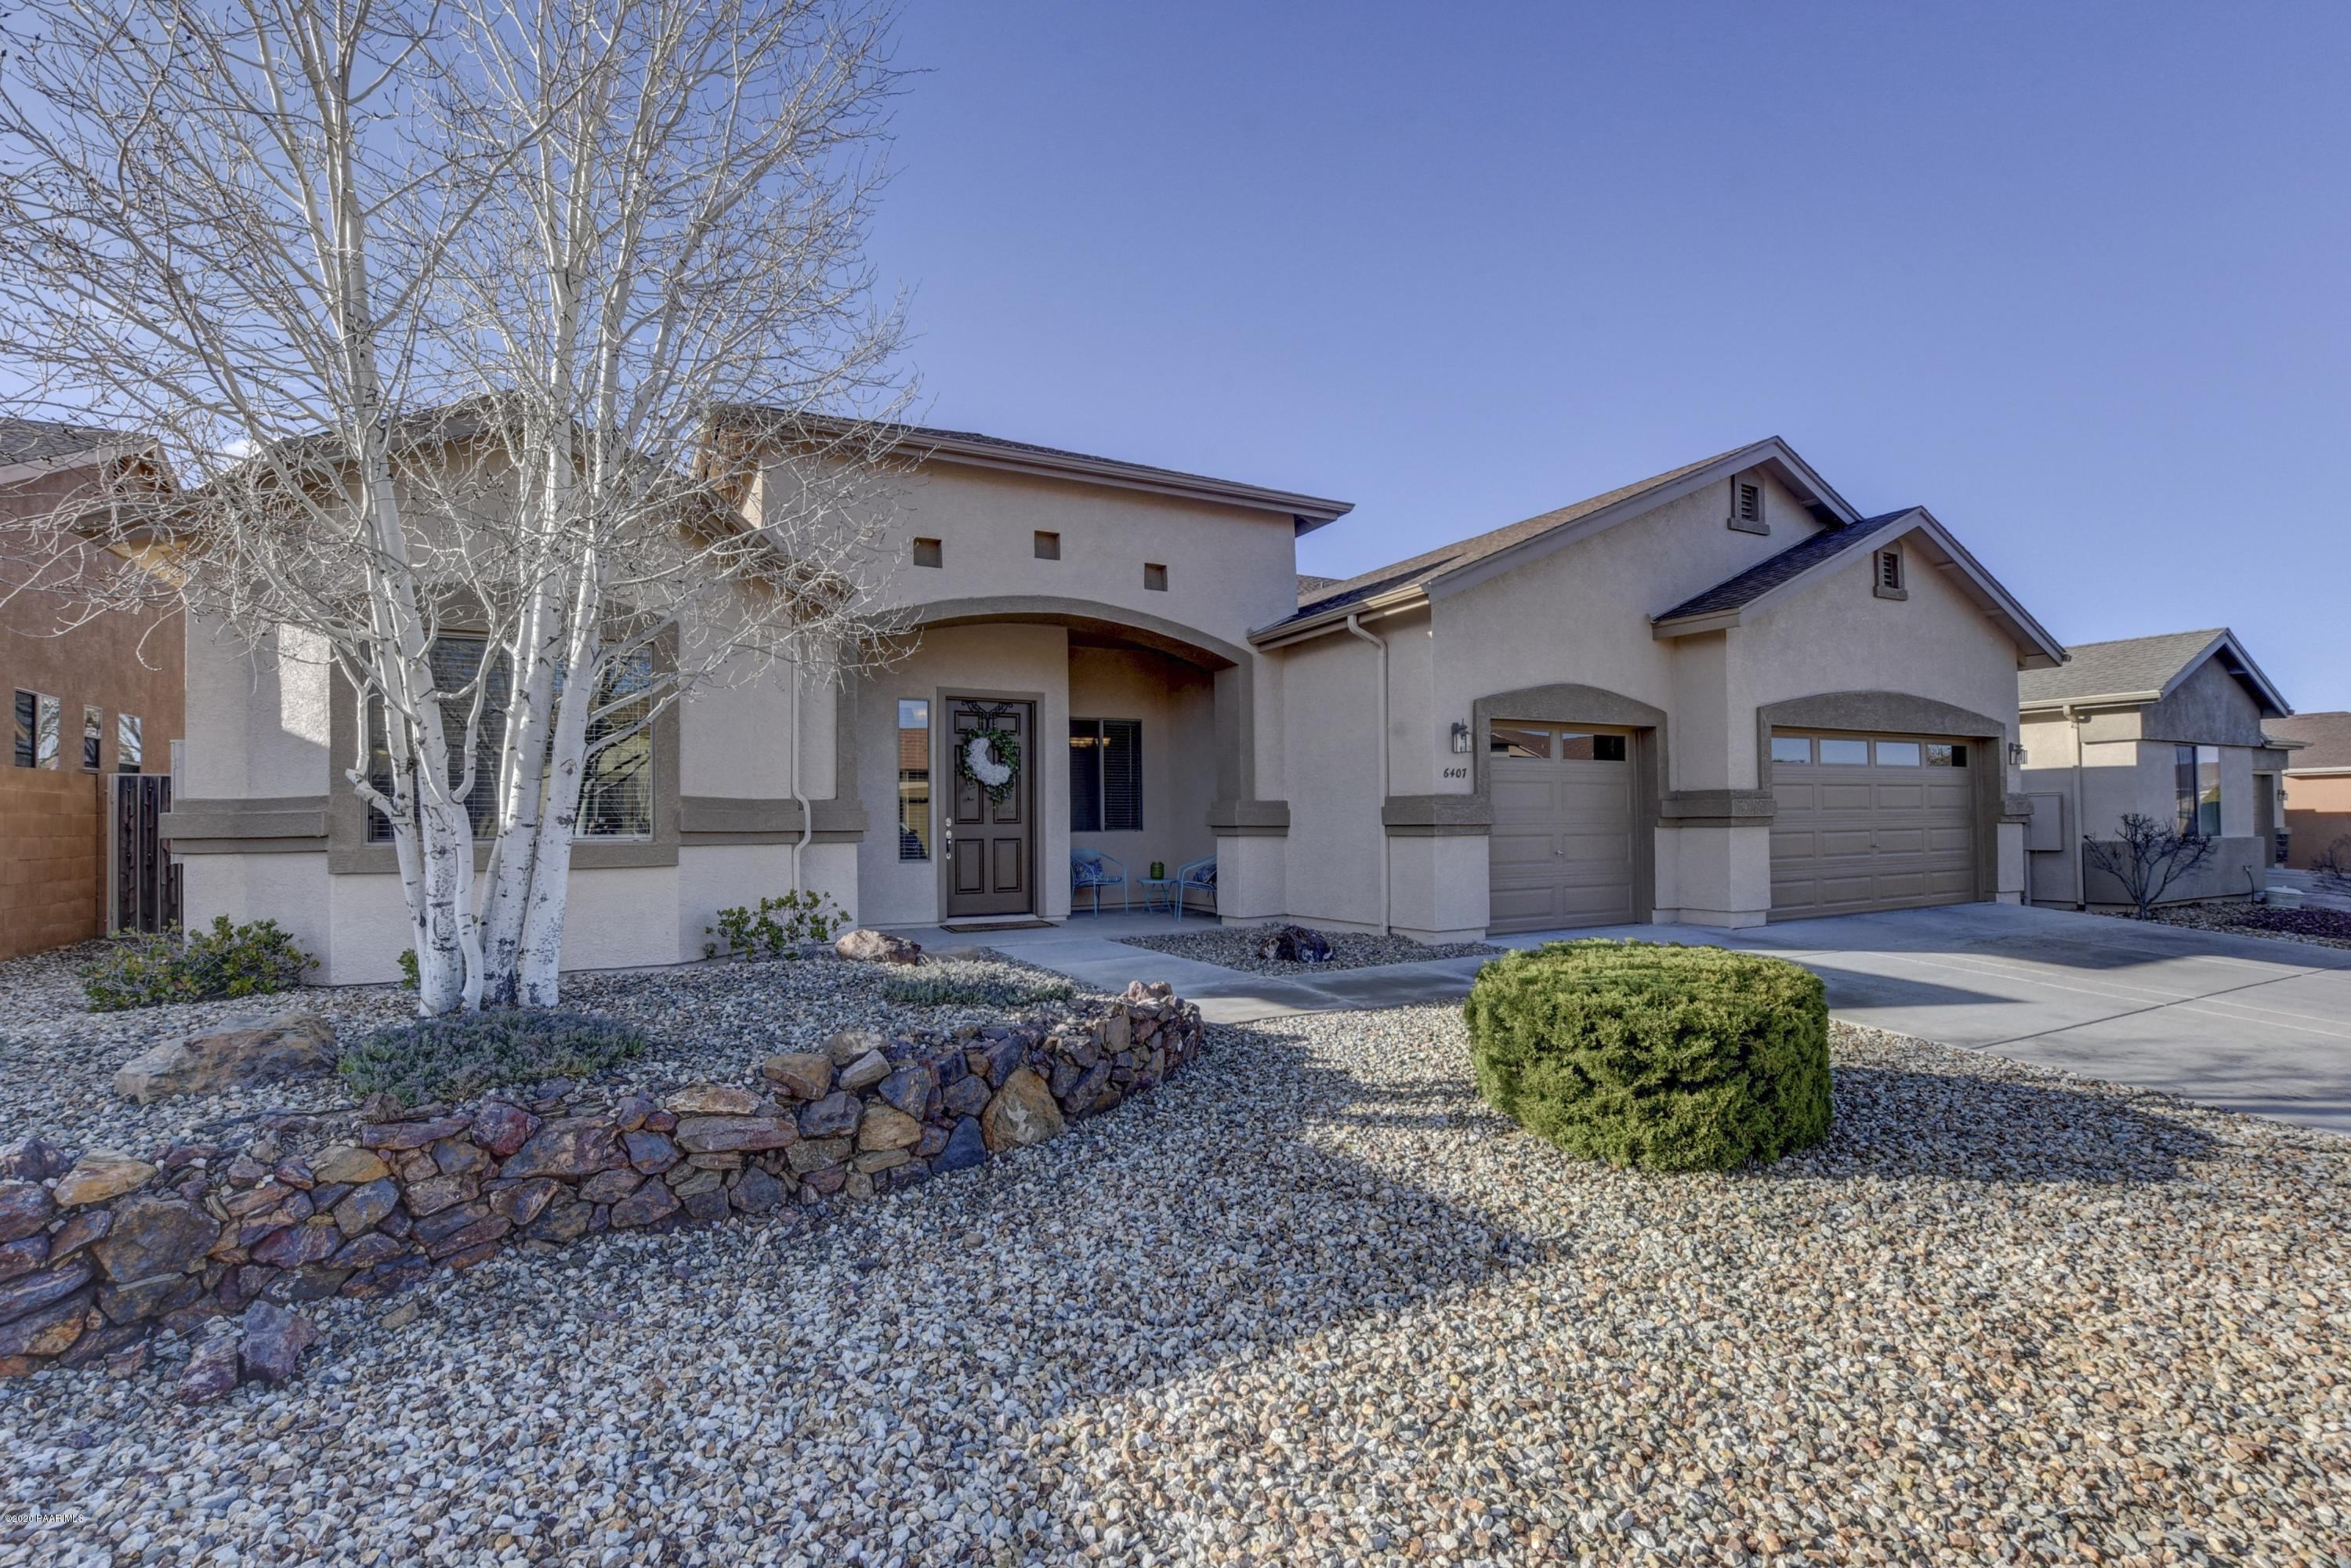 Photo of 6407 Kelmore, Prescott Valley, AZ 86314